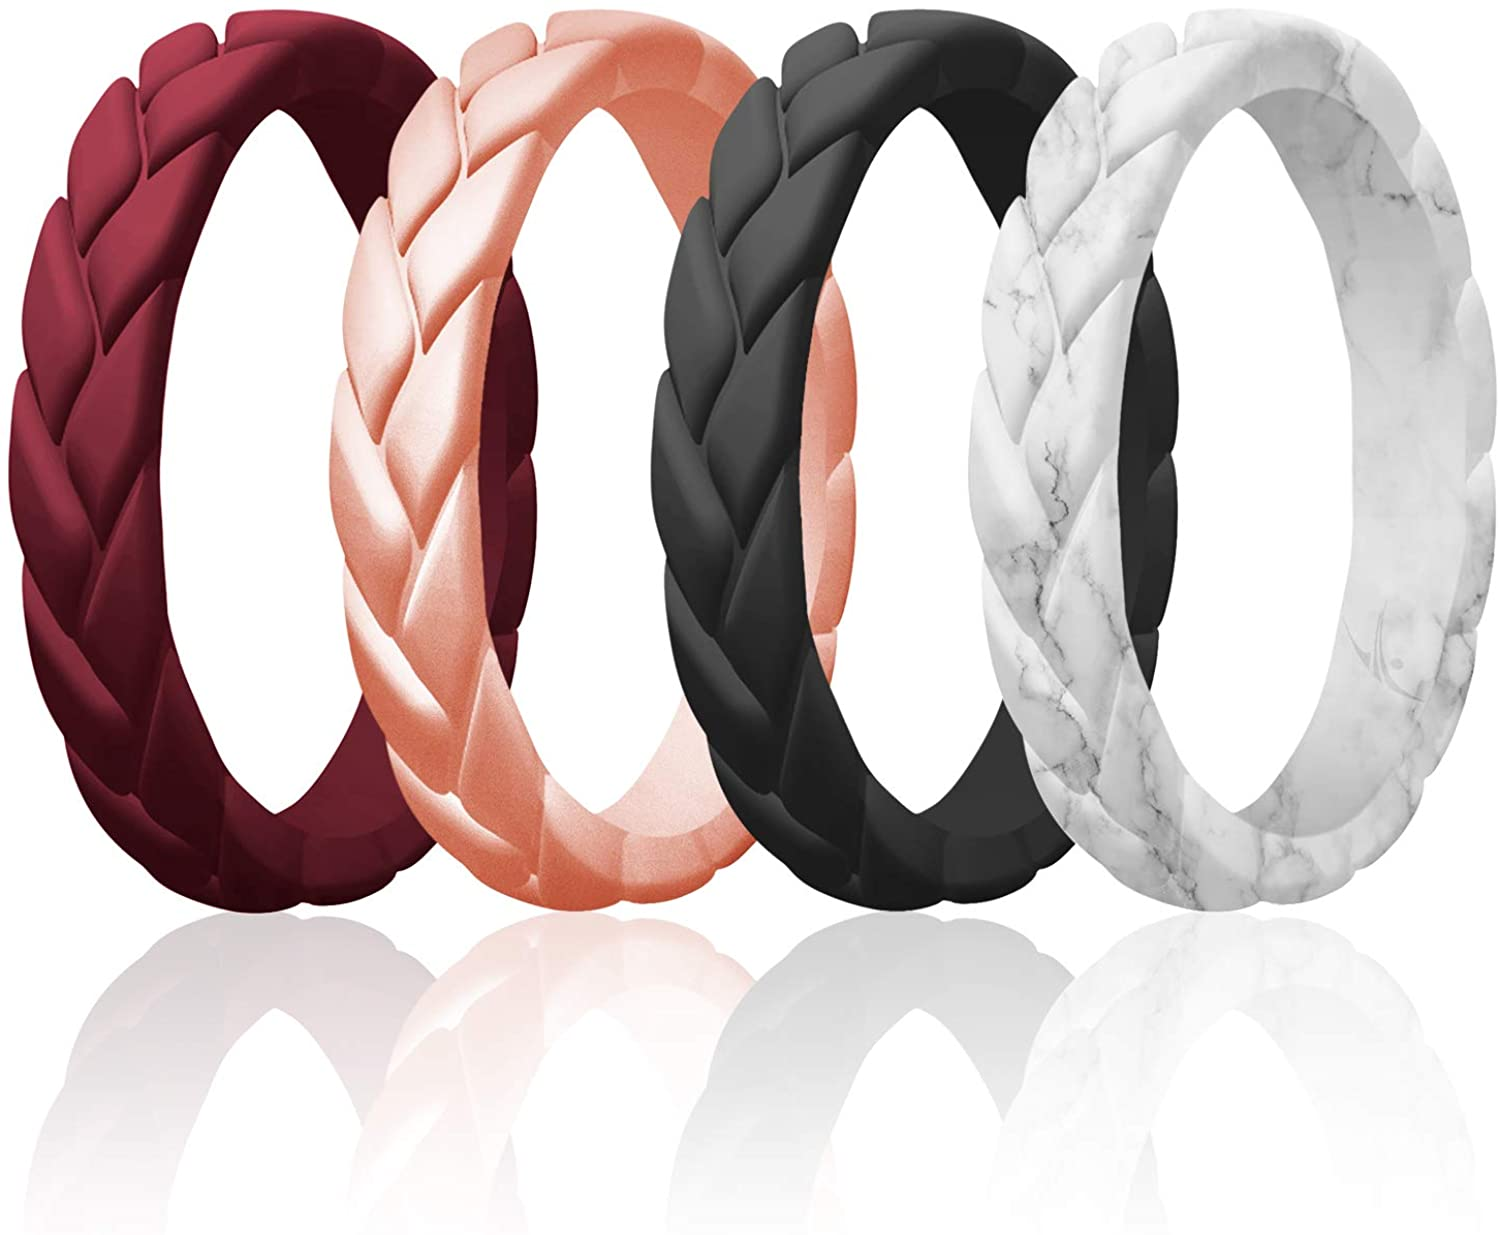 ROQ Silicone Rings for Women Thin Womens Silicone Rubber Wedding Rings Bands - Bridal Jewelry Set Promise Rings Anniversary Rings - Flame Leaves Collection - Can Be Used as Stackable Rings